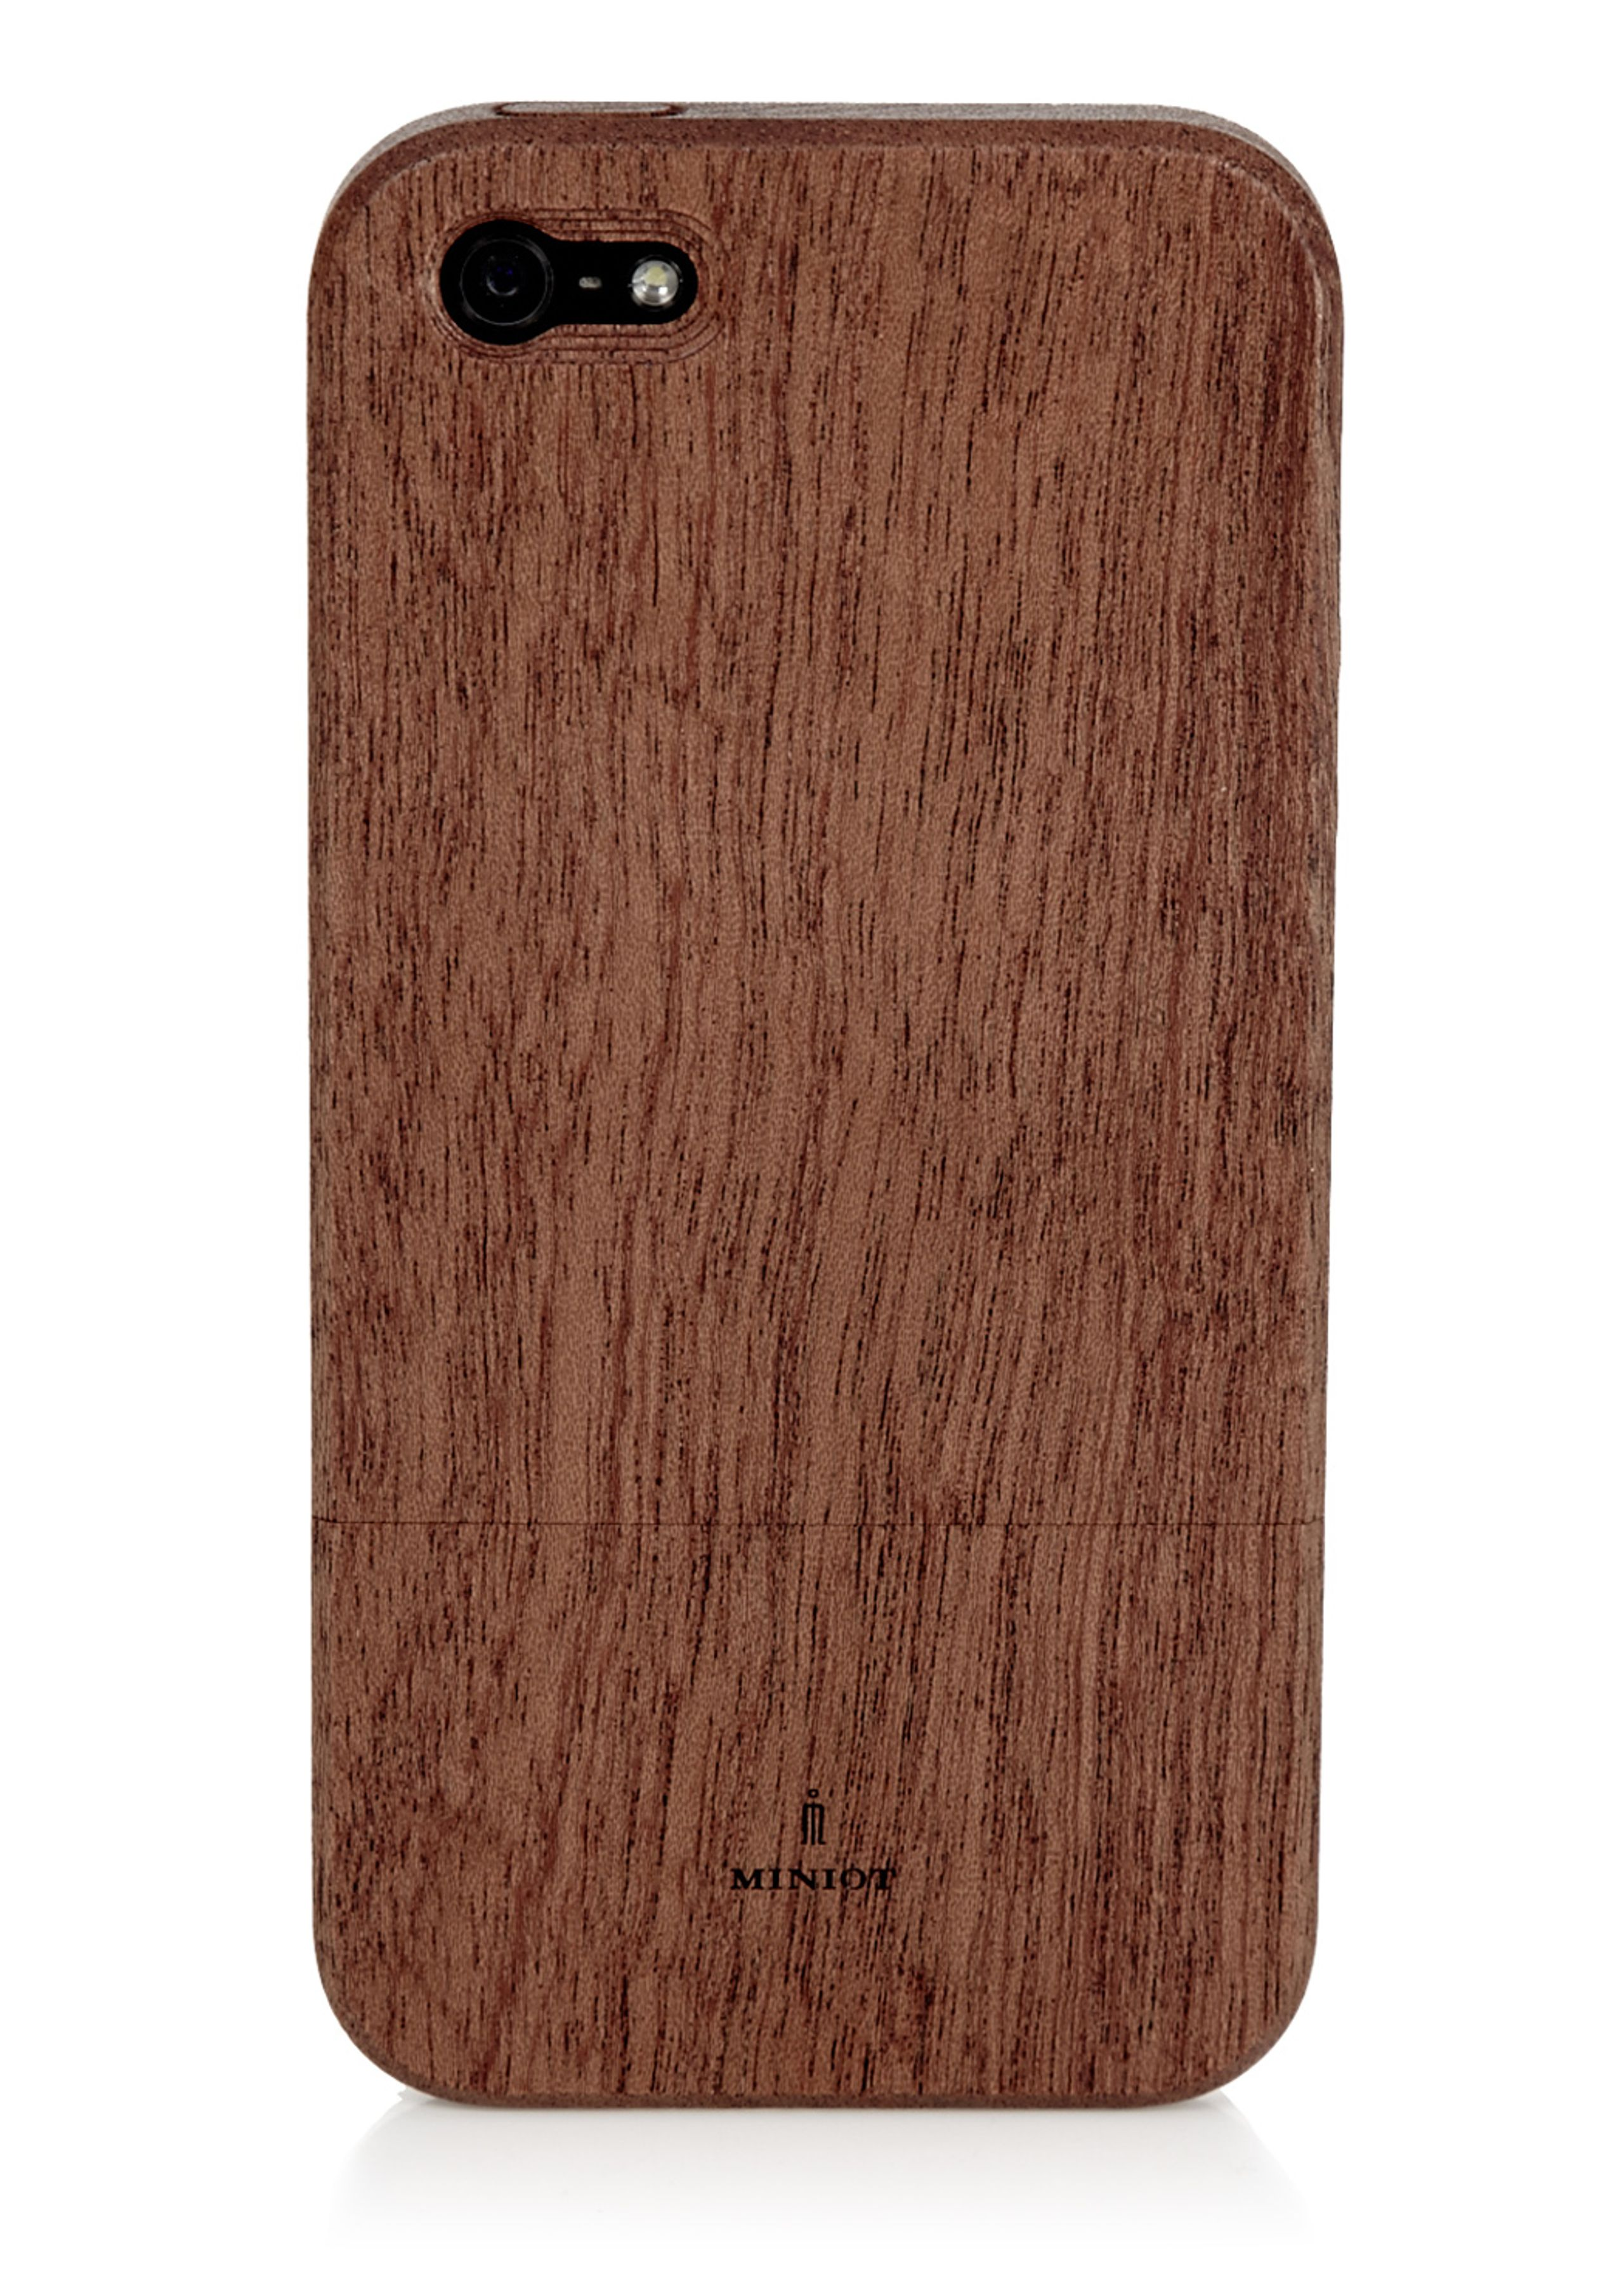 Iwood 5 iphone wood cover